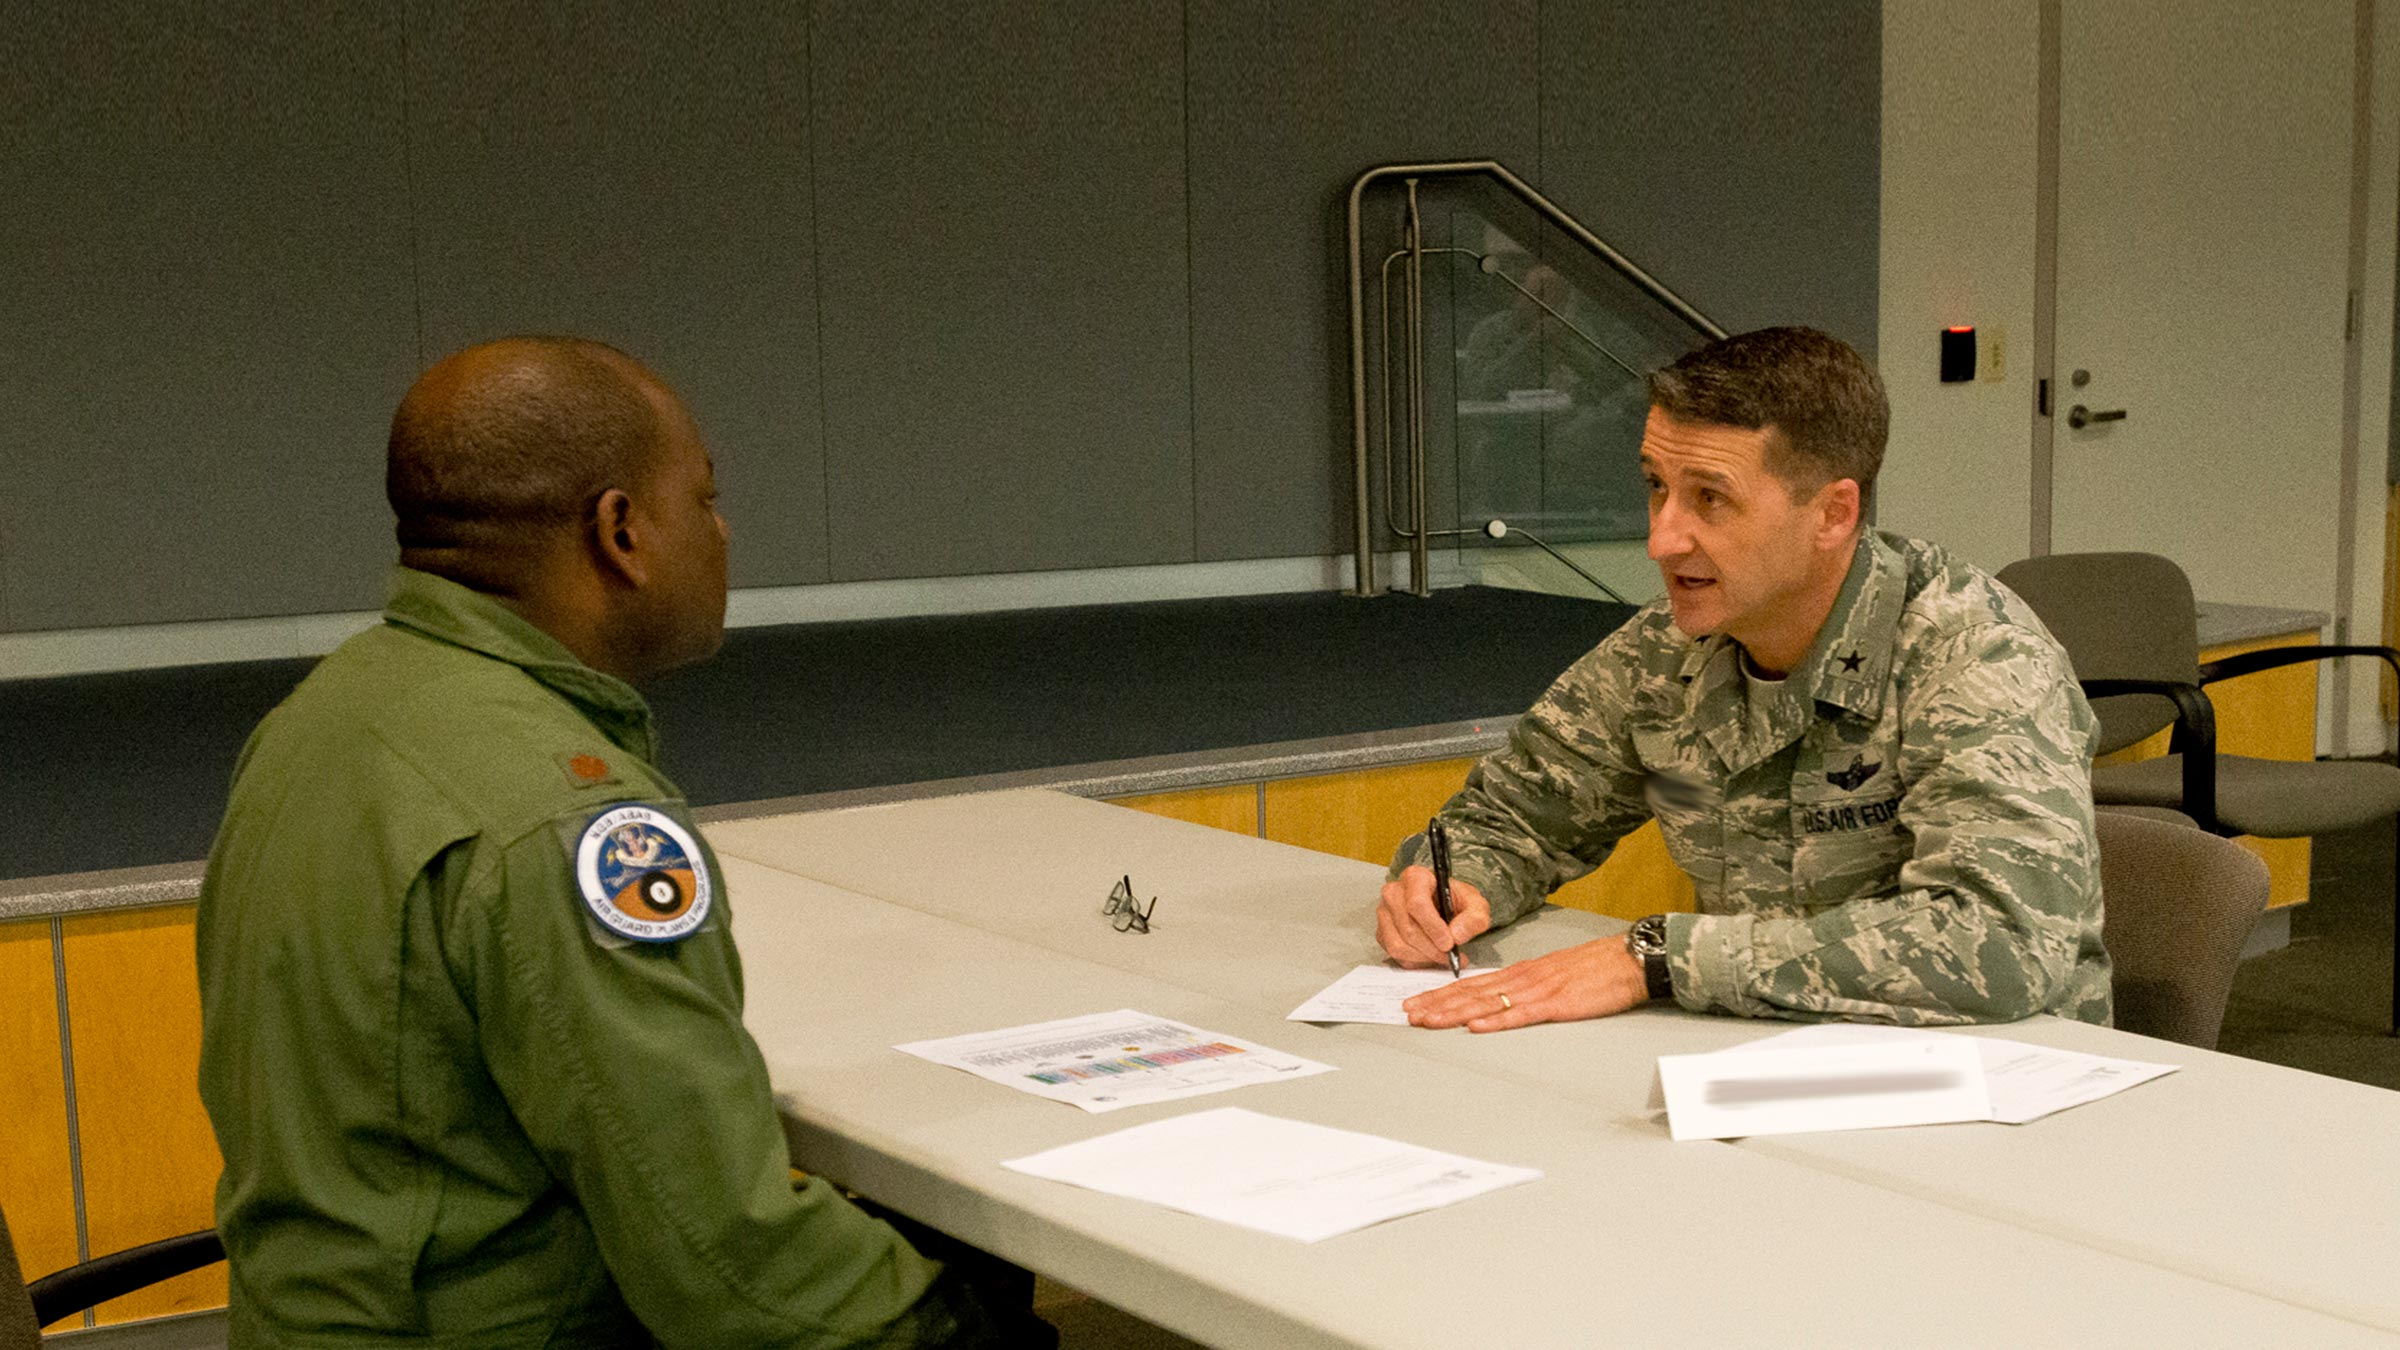 Two service members talking at table